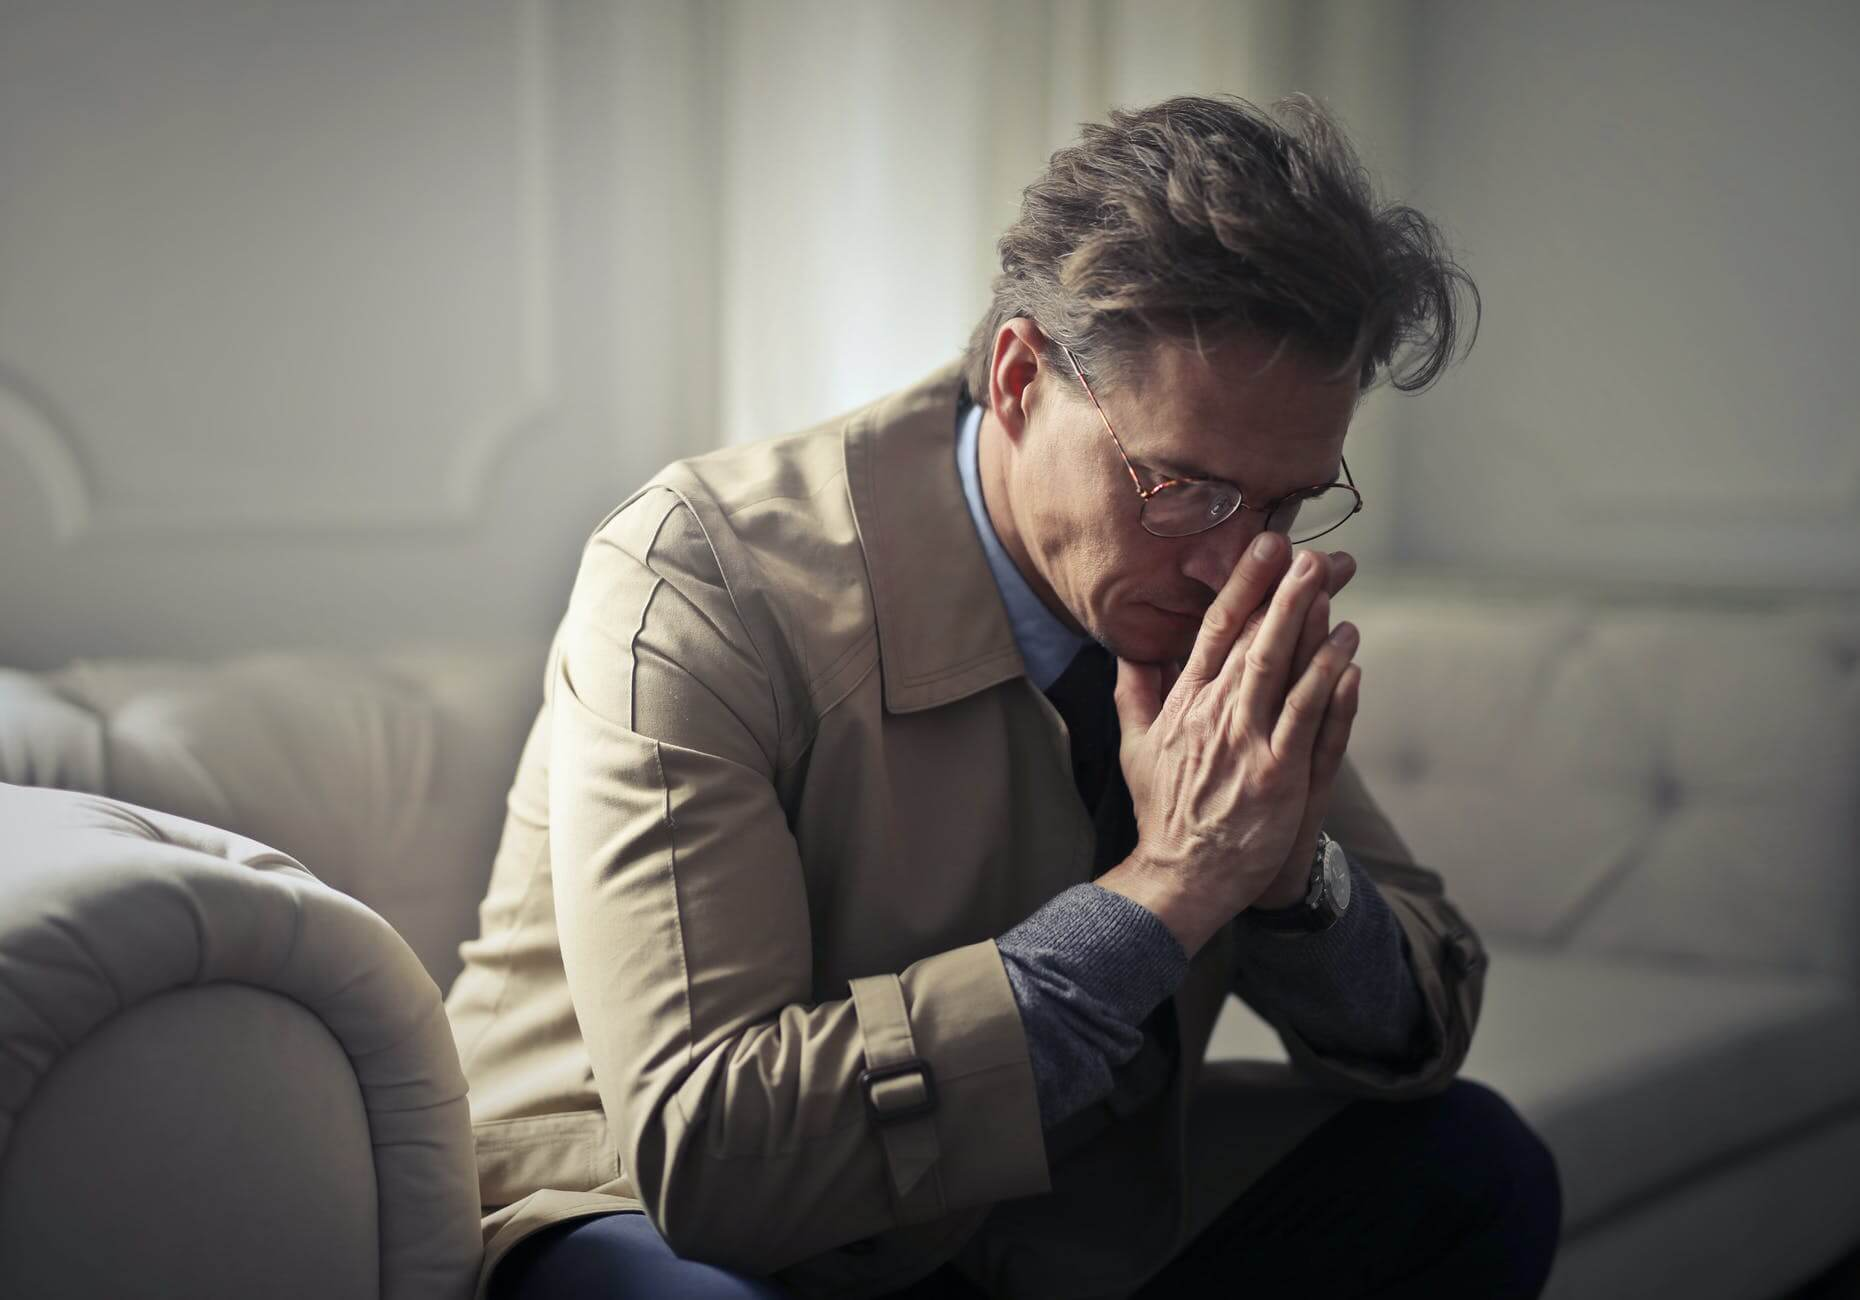 Image of a man looking distressed, representing how Anna M. Price can help ease the burdens of probate and estate administration in WV, KY, and OH.